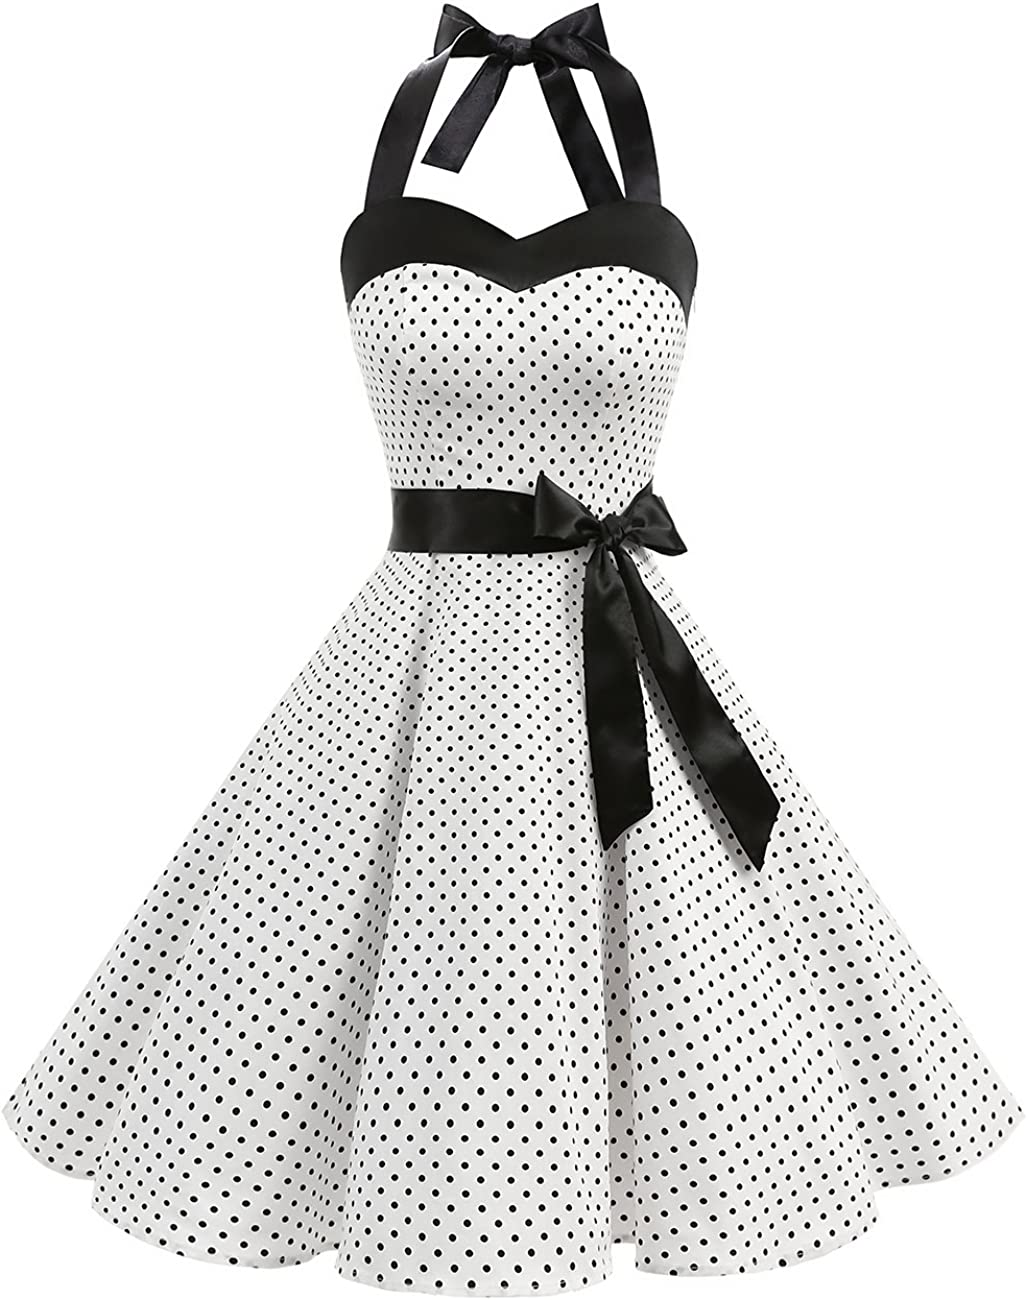 TALLA 3XL. Dresstells® Halter 50s Rockabilly Polka Dots Audrey Dress Retro Cocktail Dress White Small Black Dot 3XL